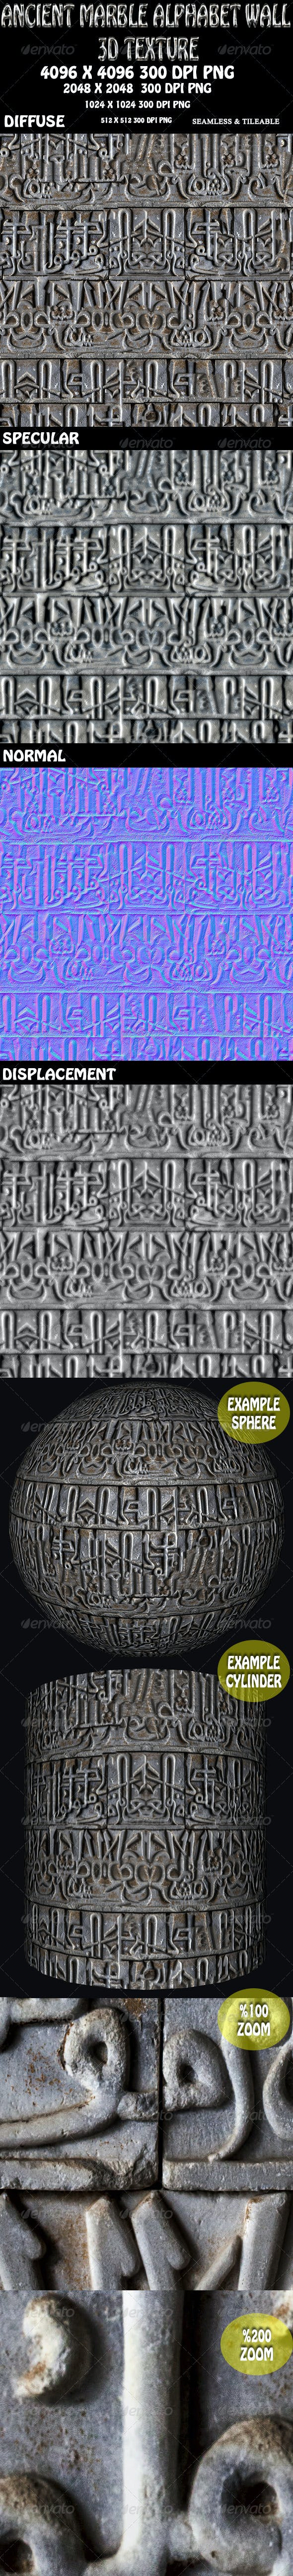 Ancient Alphabet Marble Wall 3D Texture - 3DOcean Item for Sale